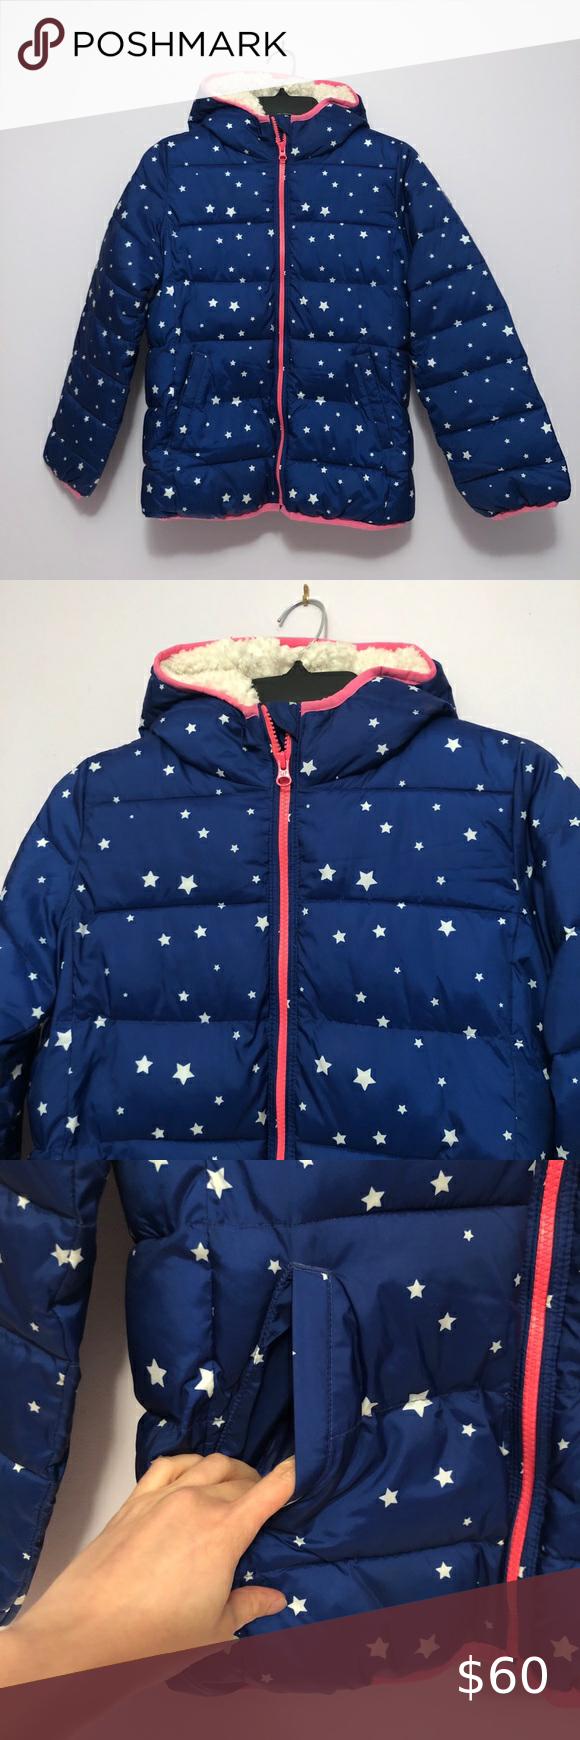 red and blue starry and spotty slippers Children/'s fleece lined